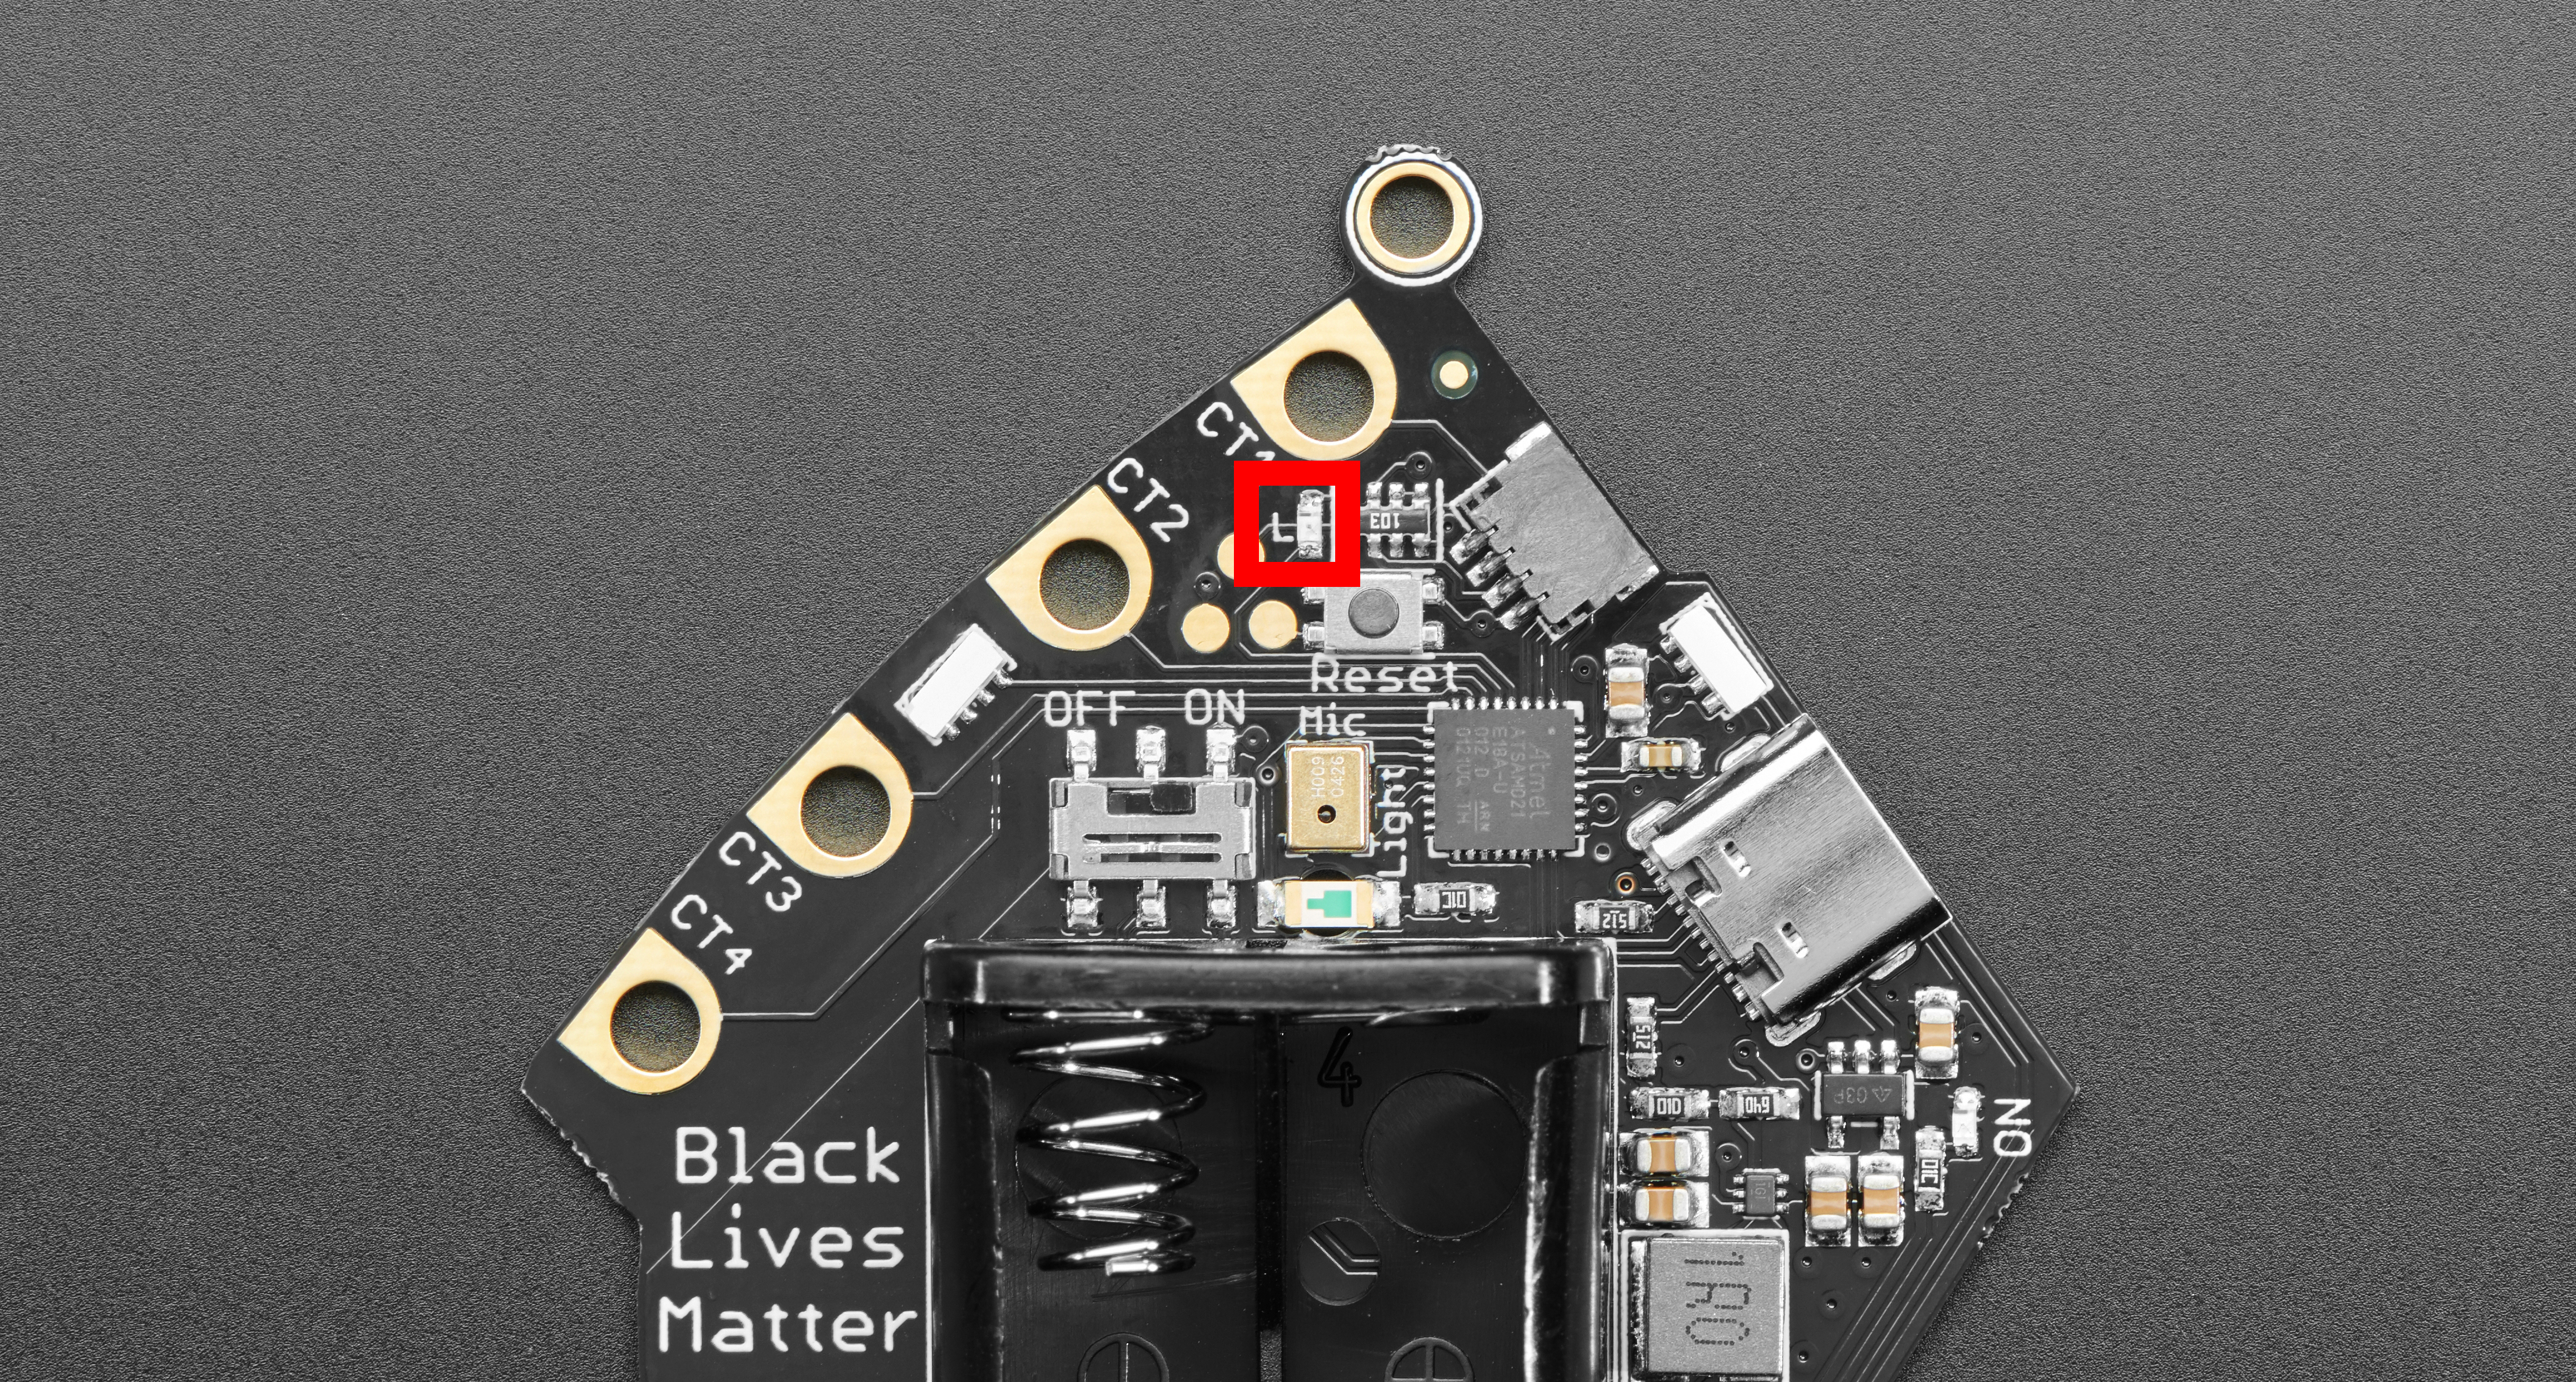 adafruit_products_BLM_D13_LED.jpg